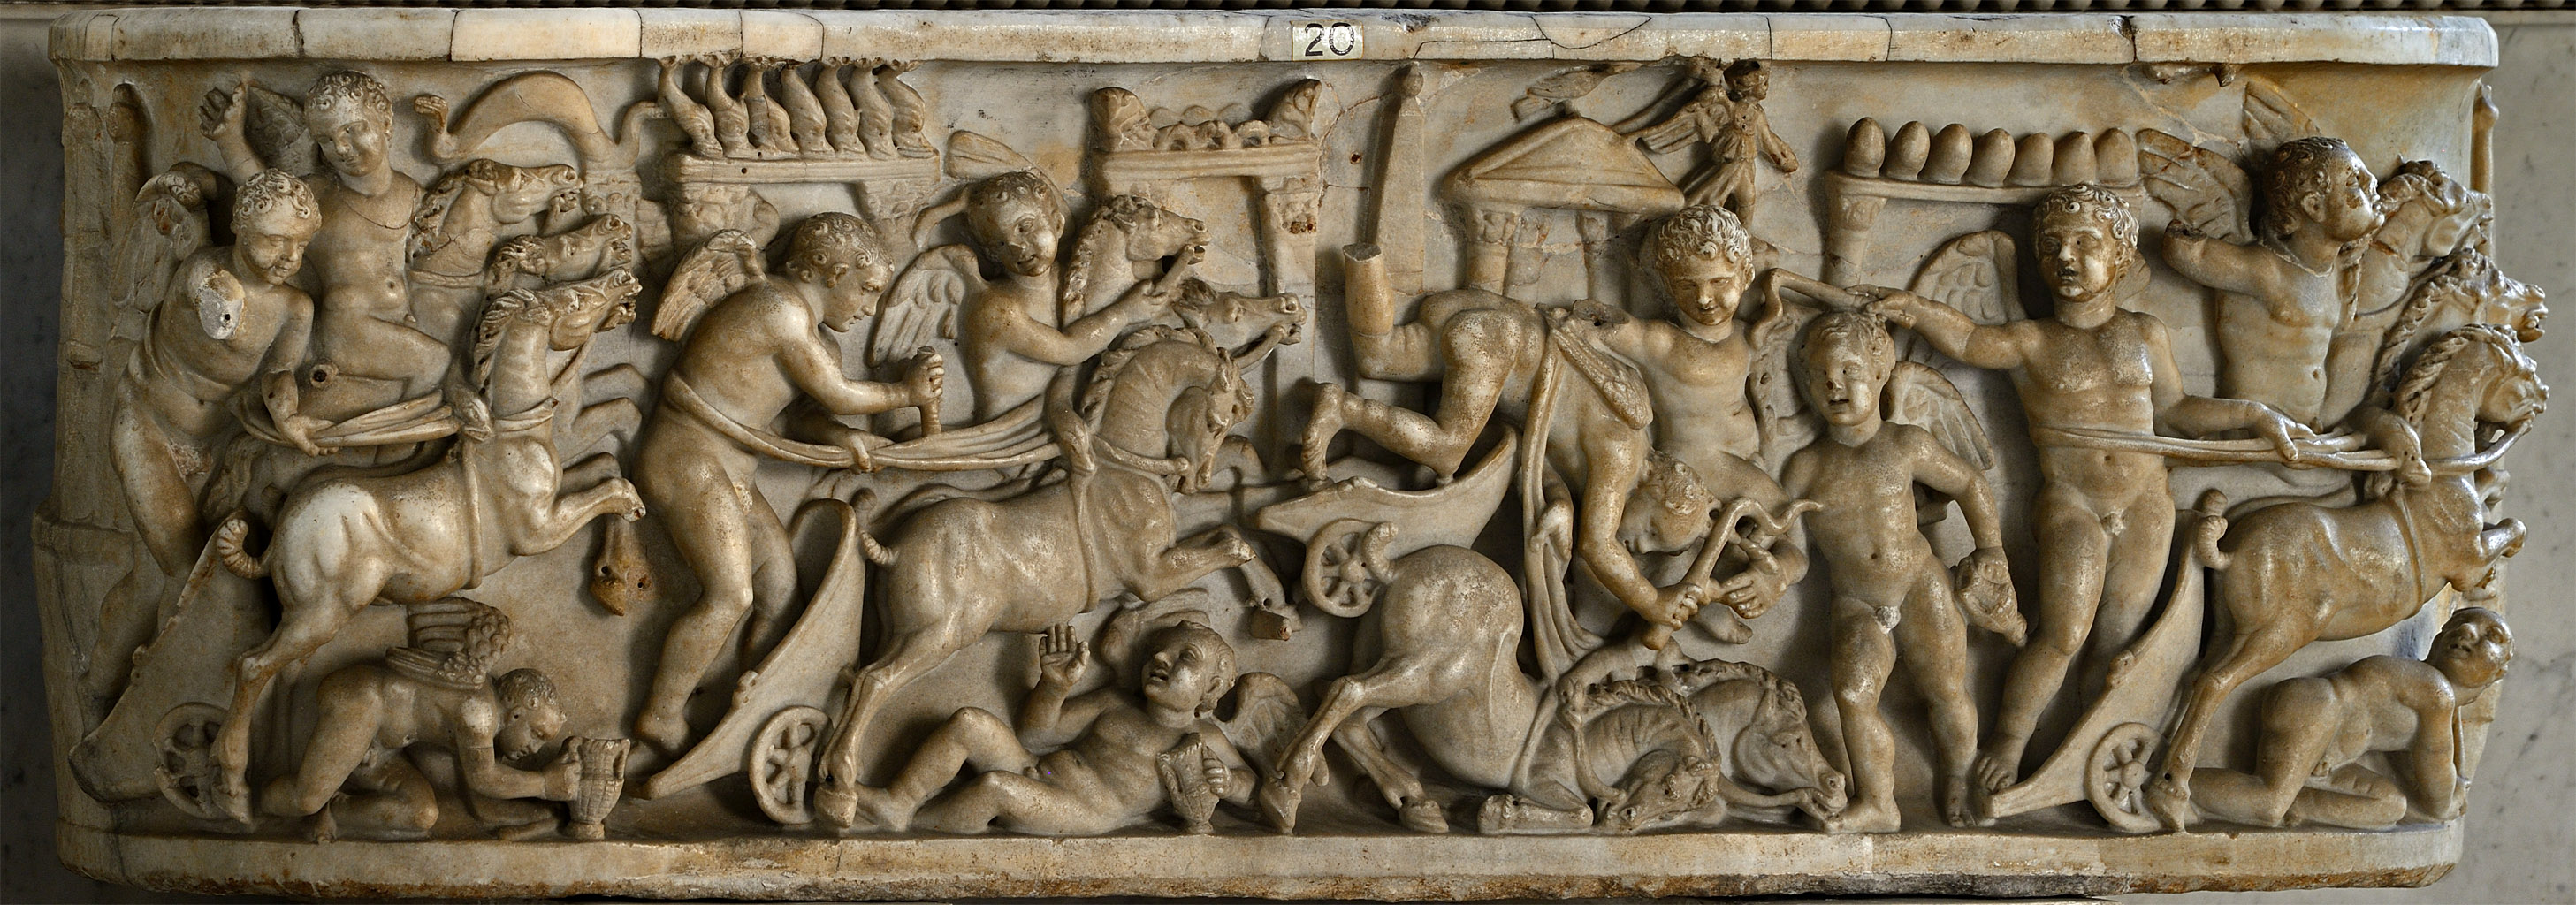 Lenos sarcophagus of a child with a chariot race of Amors (front panel). Marble. 130—192 CE. Inv. No. 2348. Rome, Vatican Museums, Pius-Clementine Museum, Room of the Biga, 20